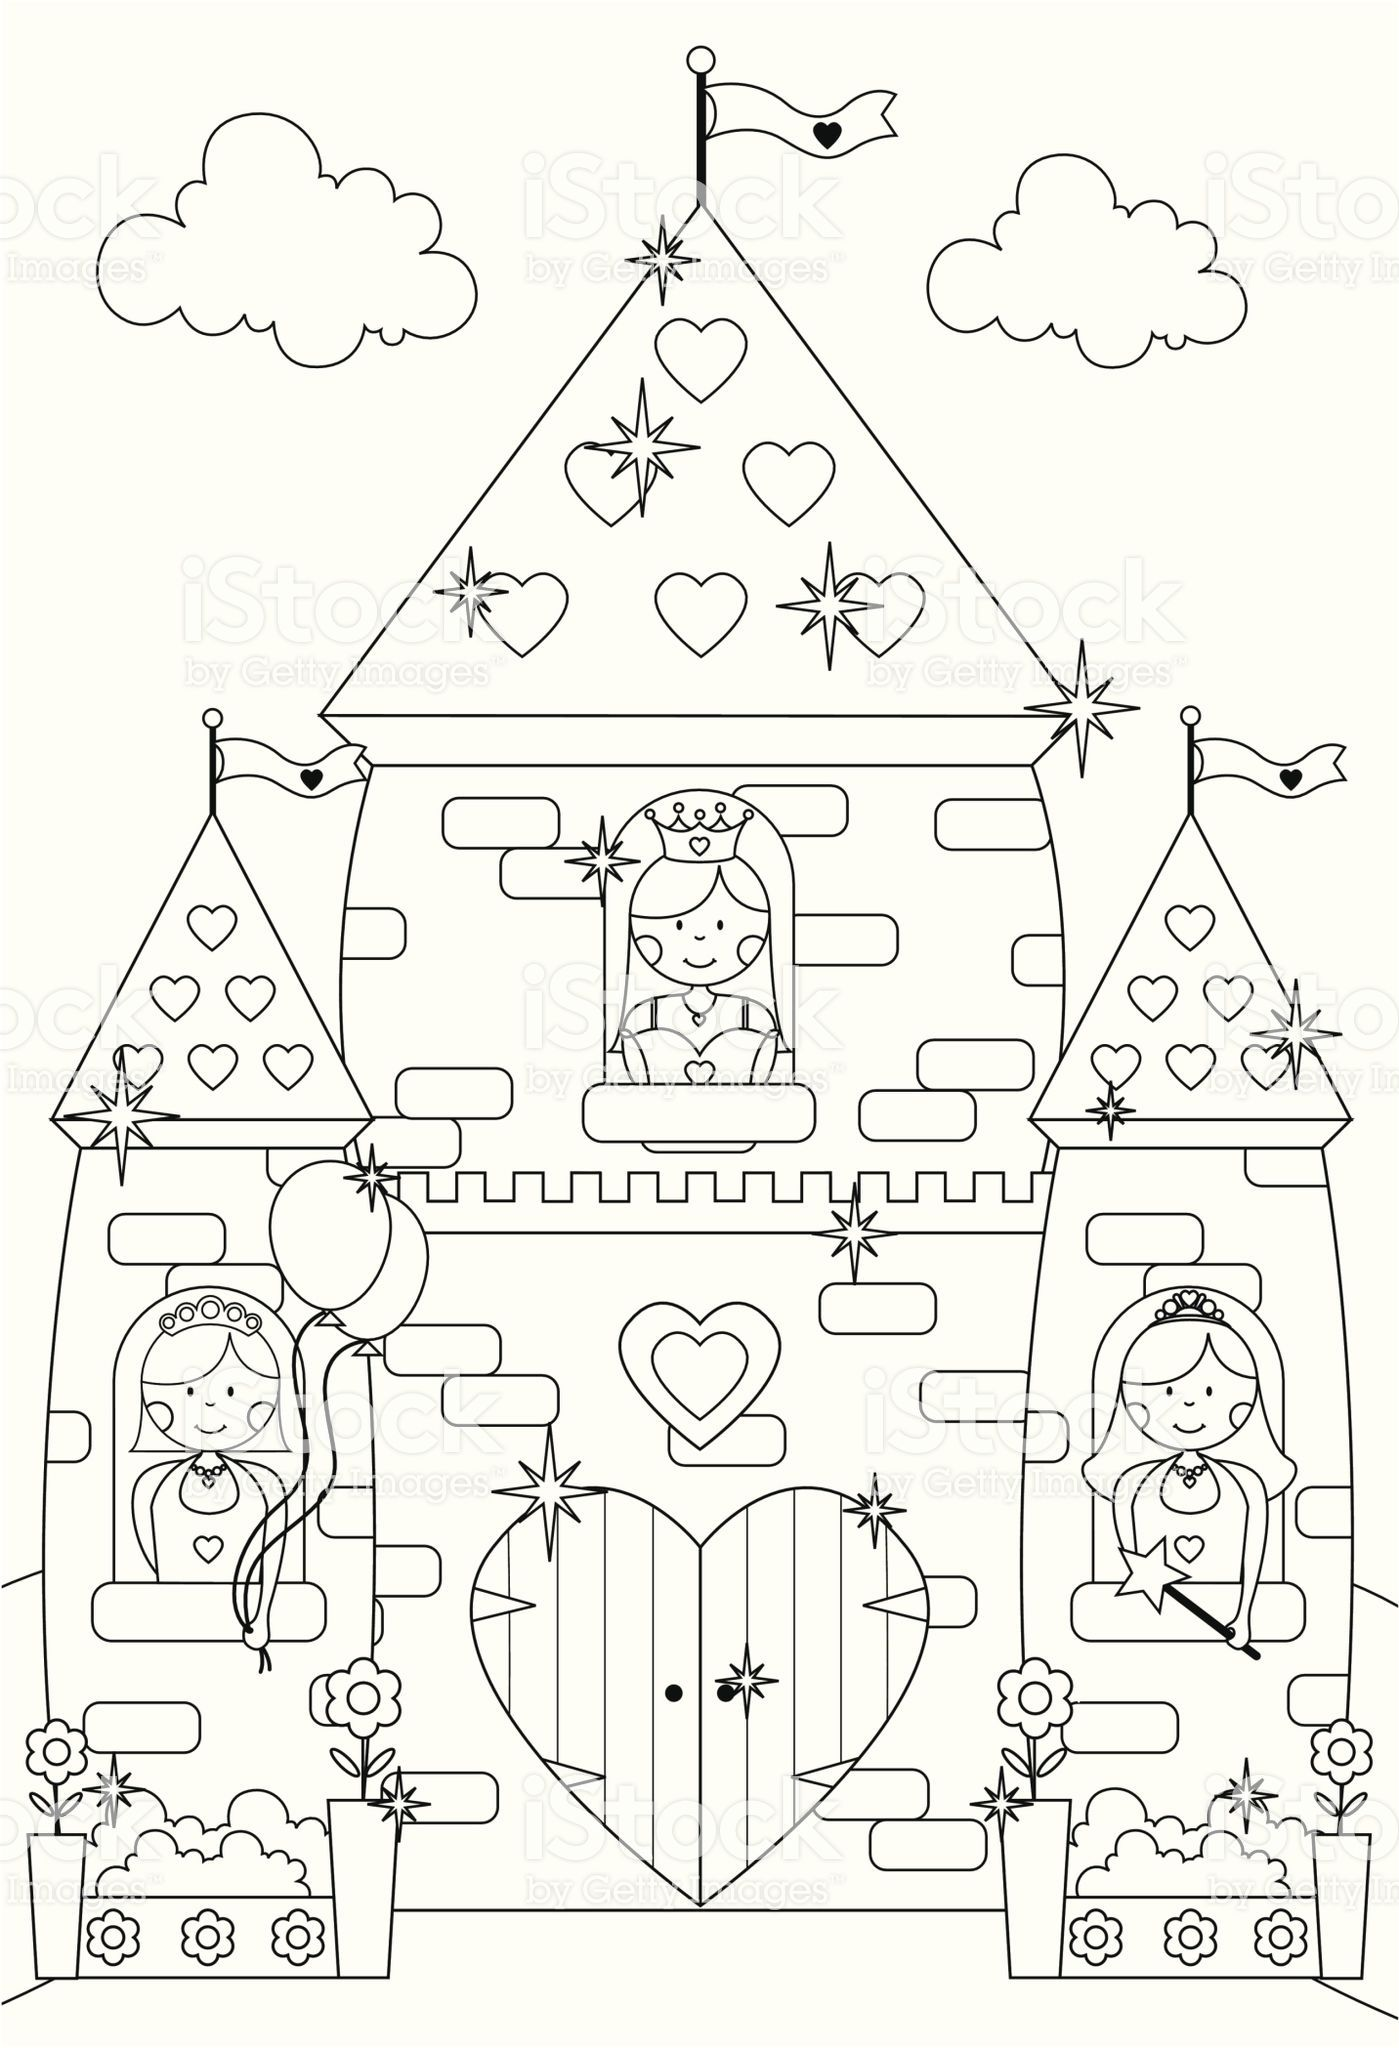 Fairy near Castle coloring page | Free Printable Coloring Pages | 2048x1399